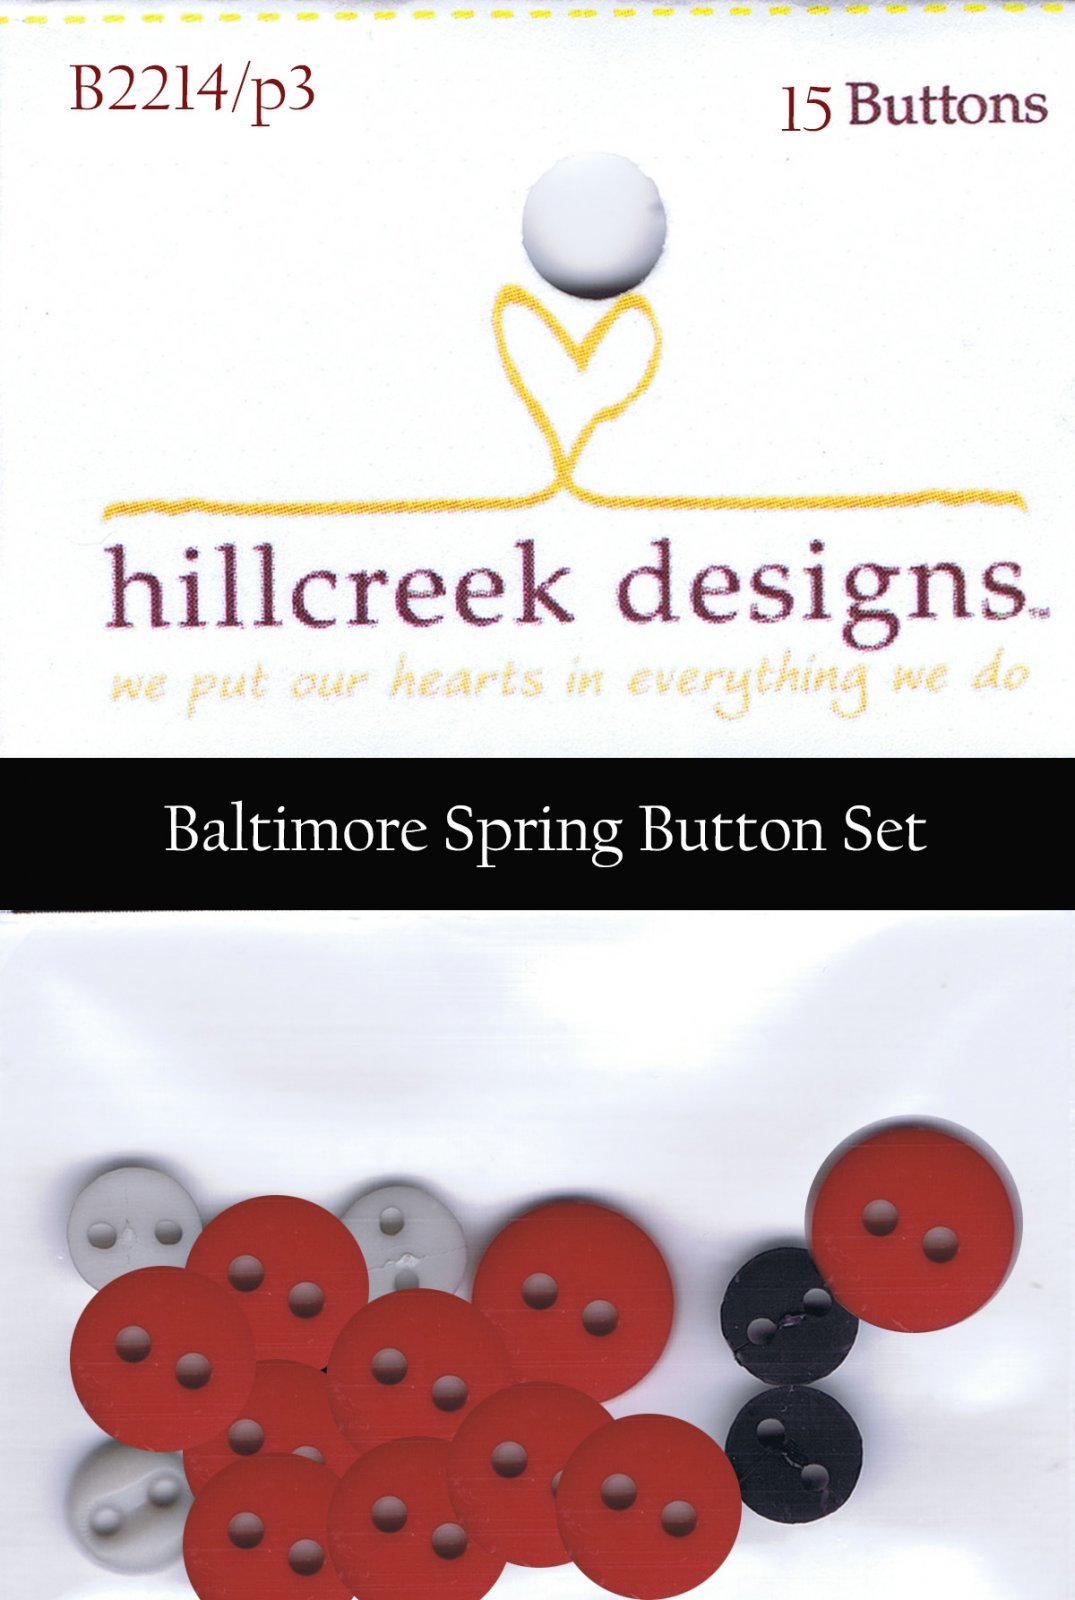 P3-2214 Baltimore Spring Button Set